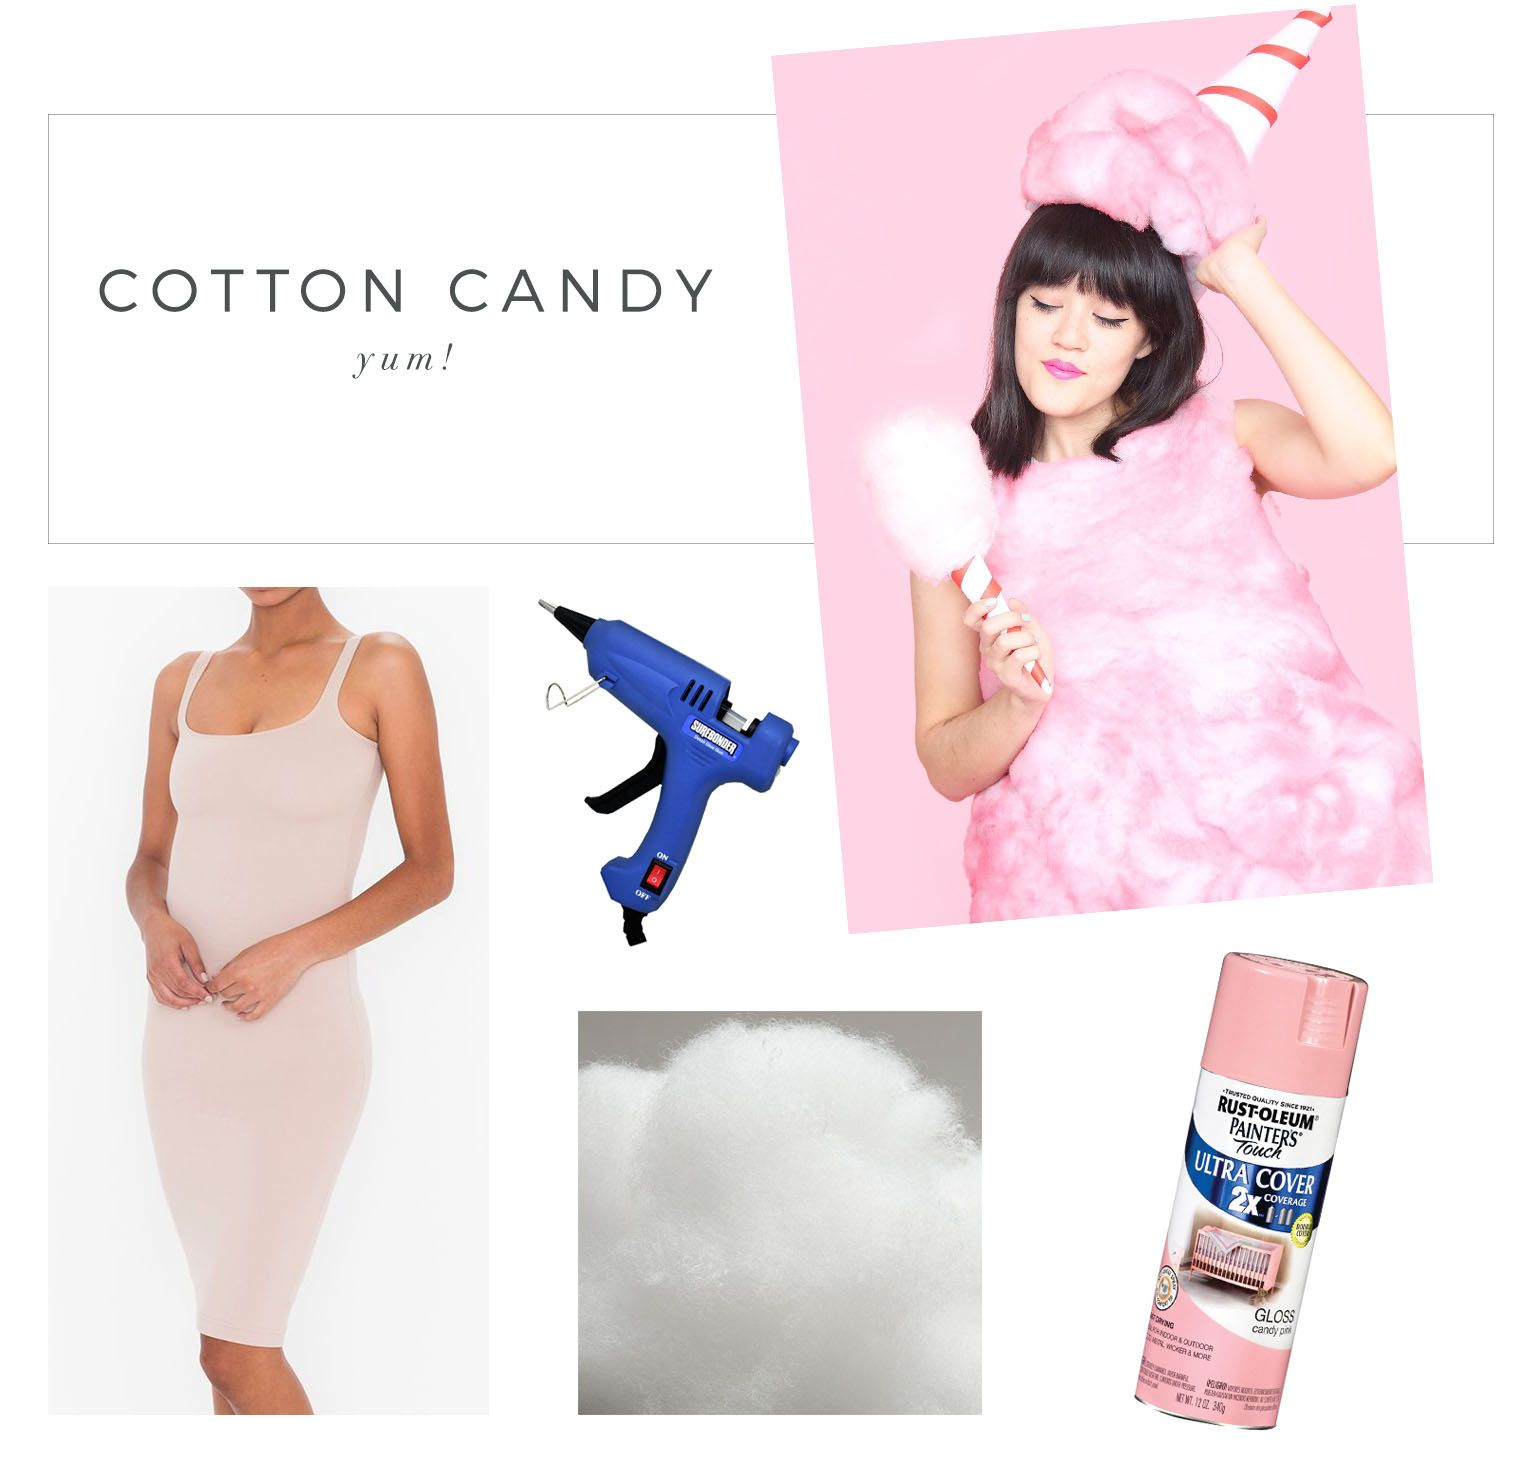 cotton candy costume  sc 1 st  Pinterest & More Semi-DIY Halloween Costume Ideas! | Costumes Halloween ...